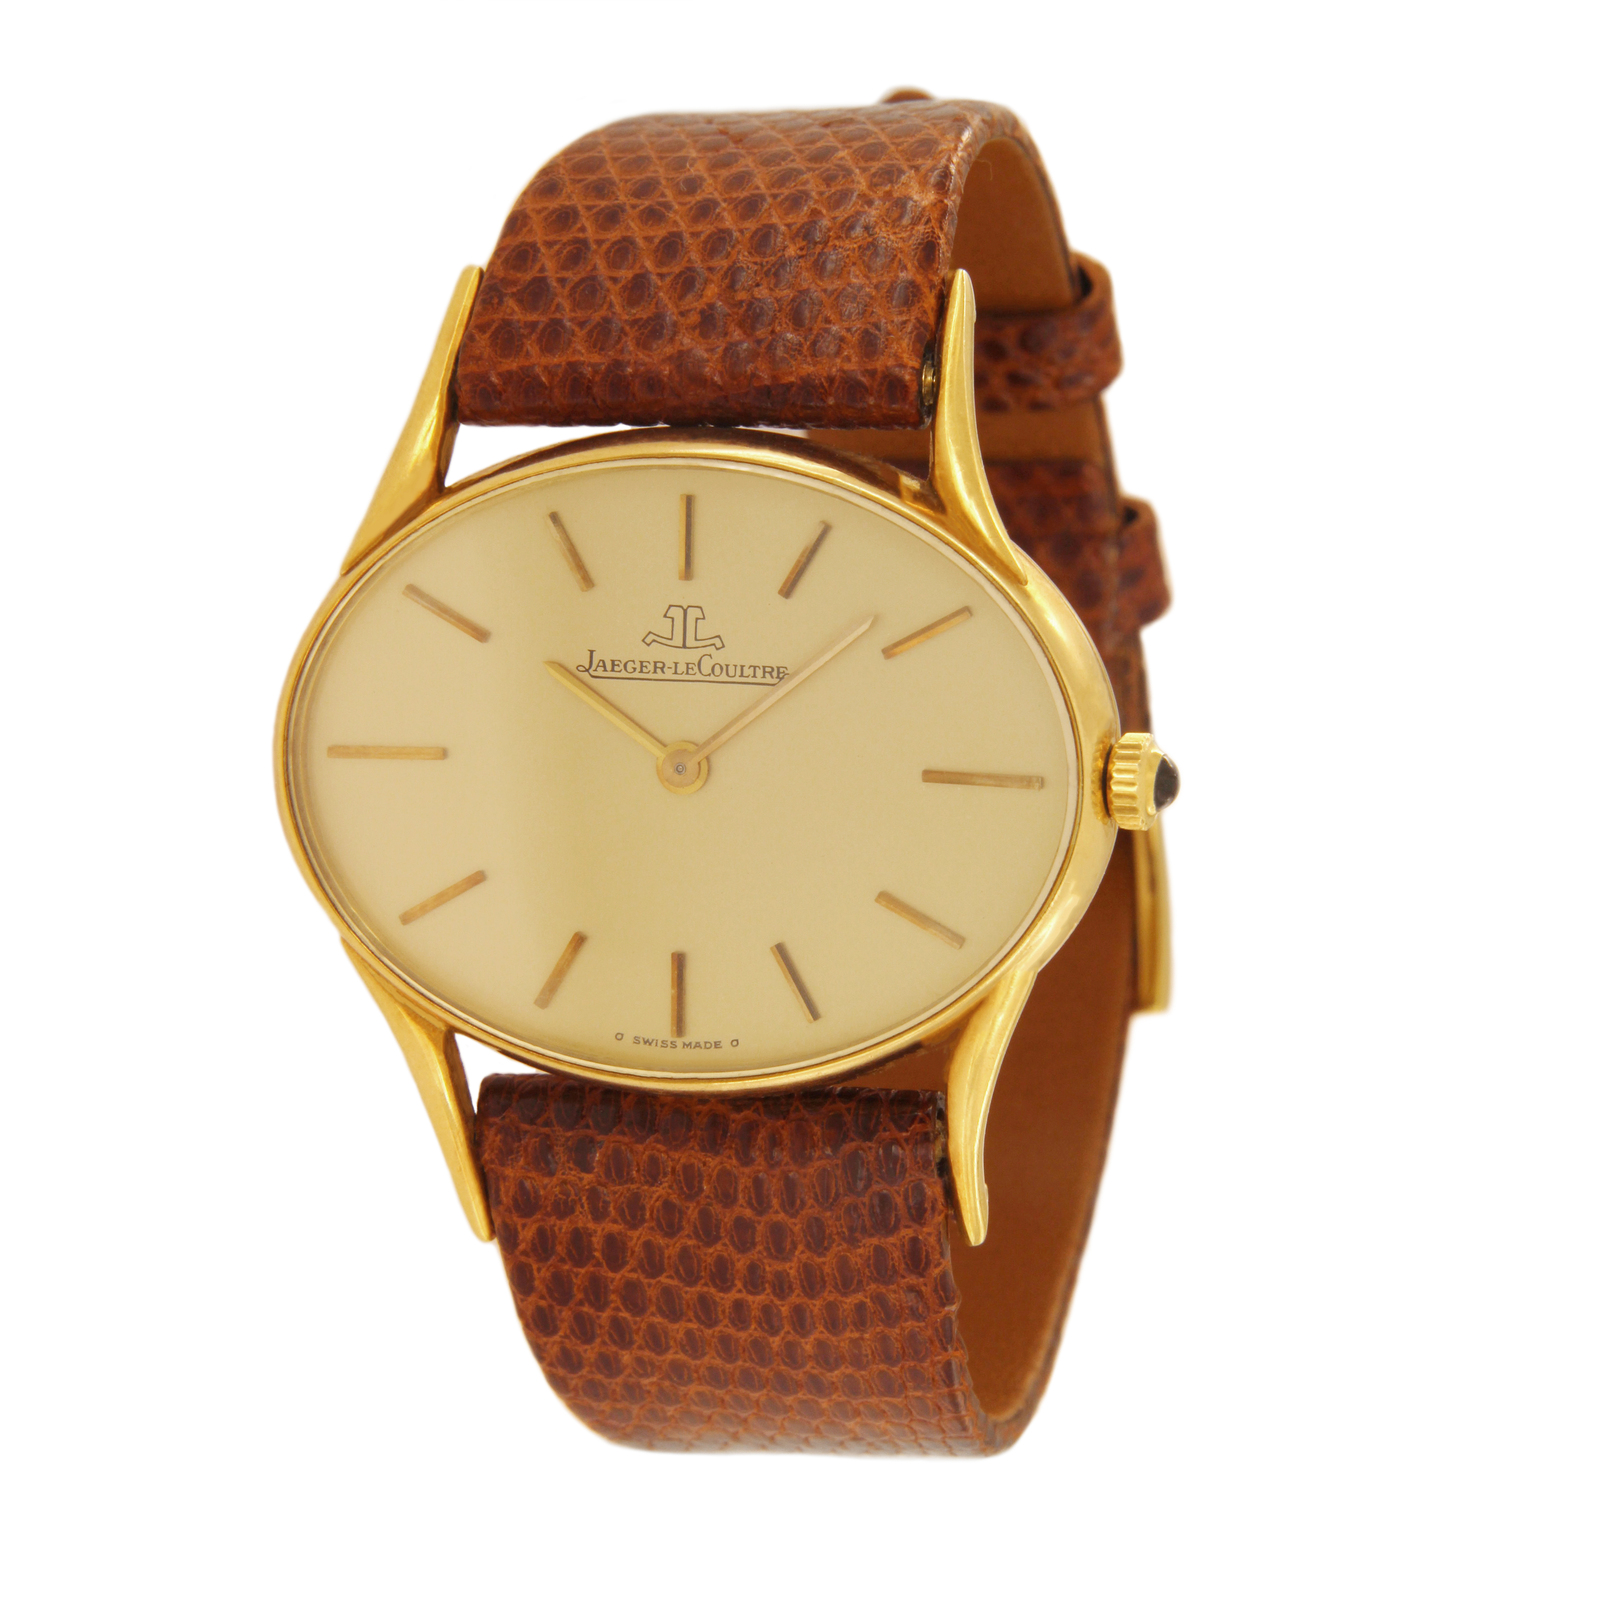 Jaeger LeCoultre Vintage Oval Watch in 18K Gold 4463 21